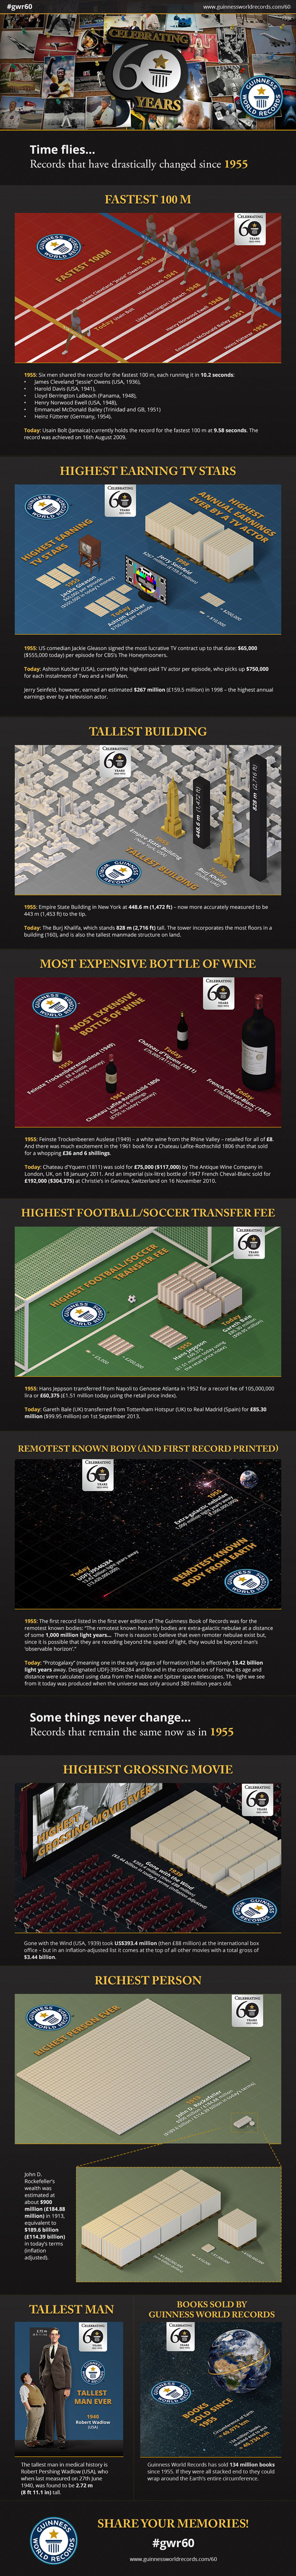 60th infographic